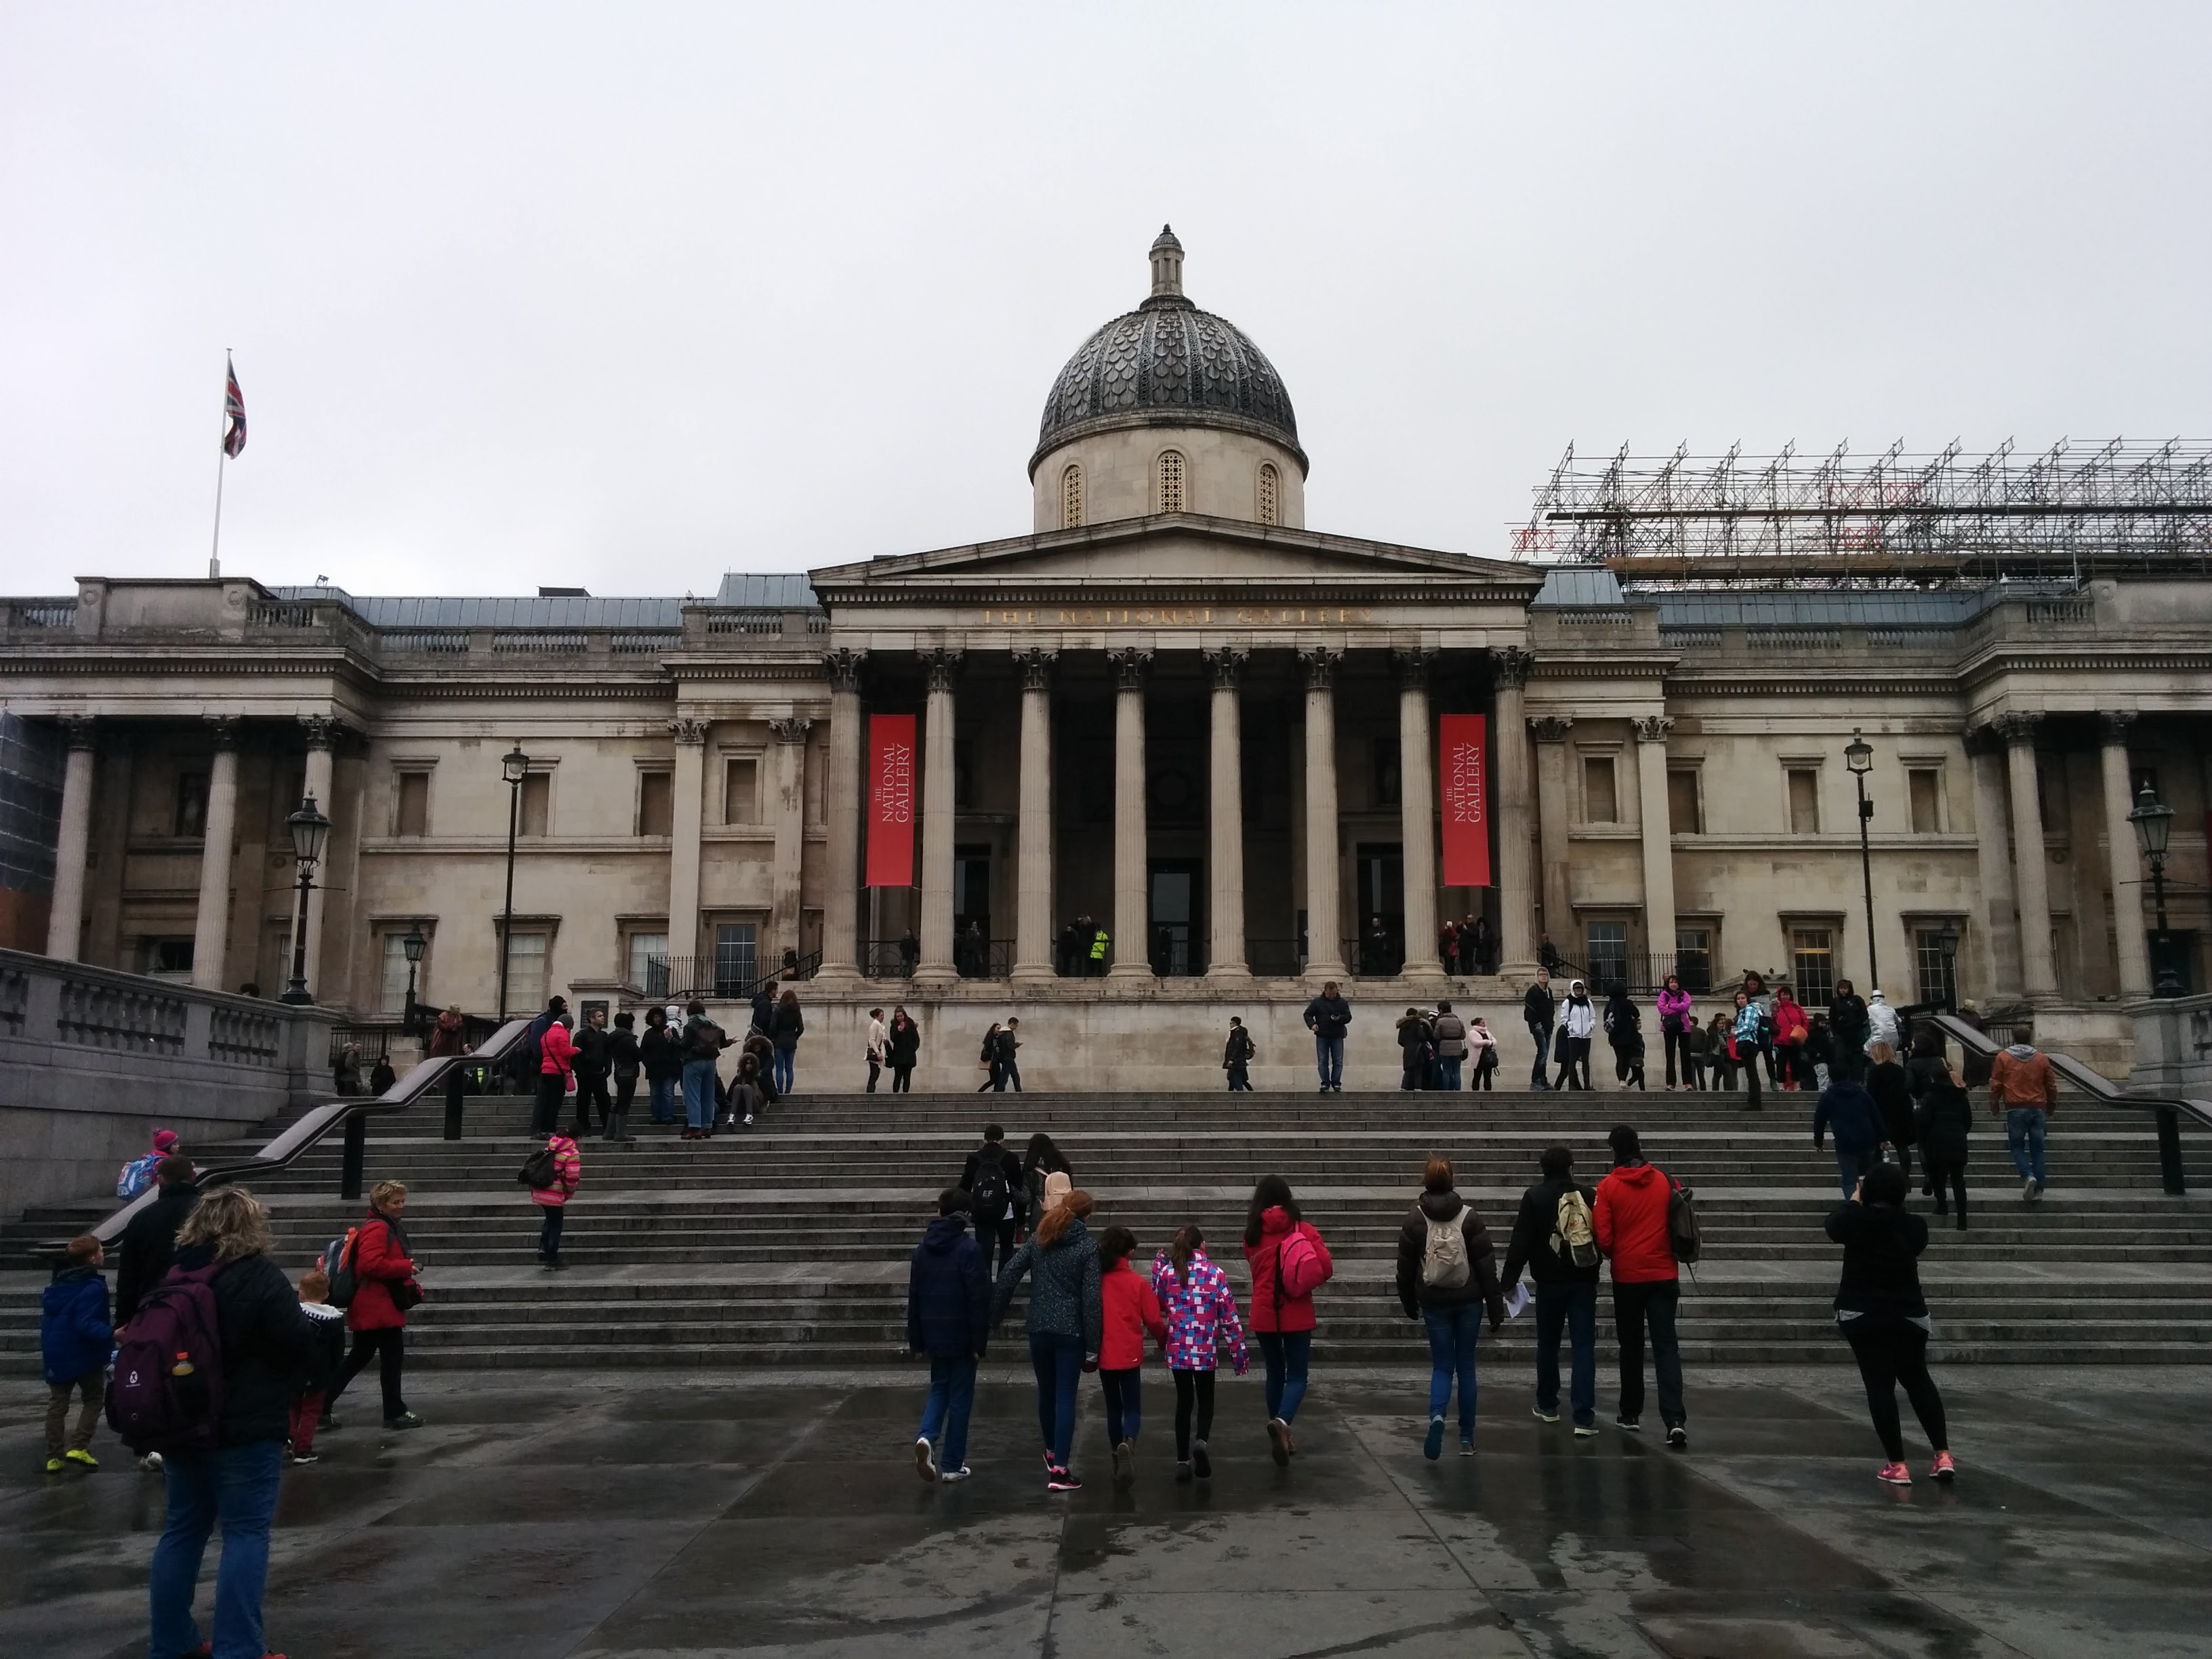 The National Gallery, home to works of art from around the world